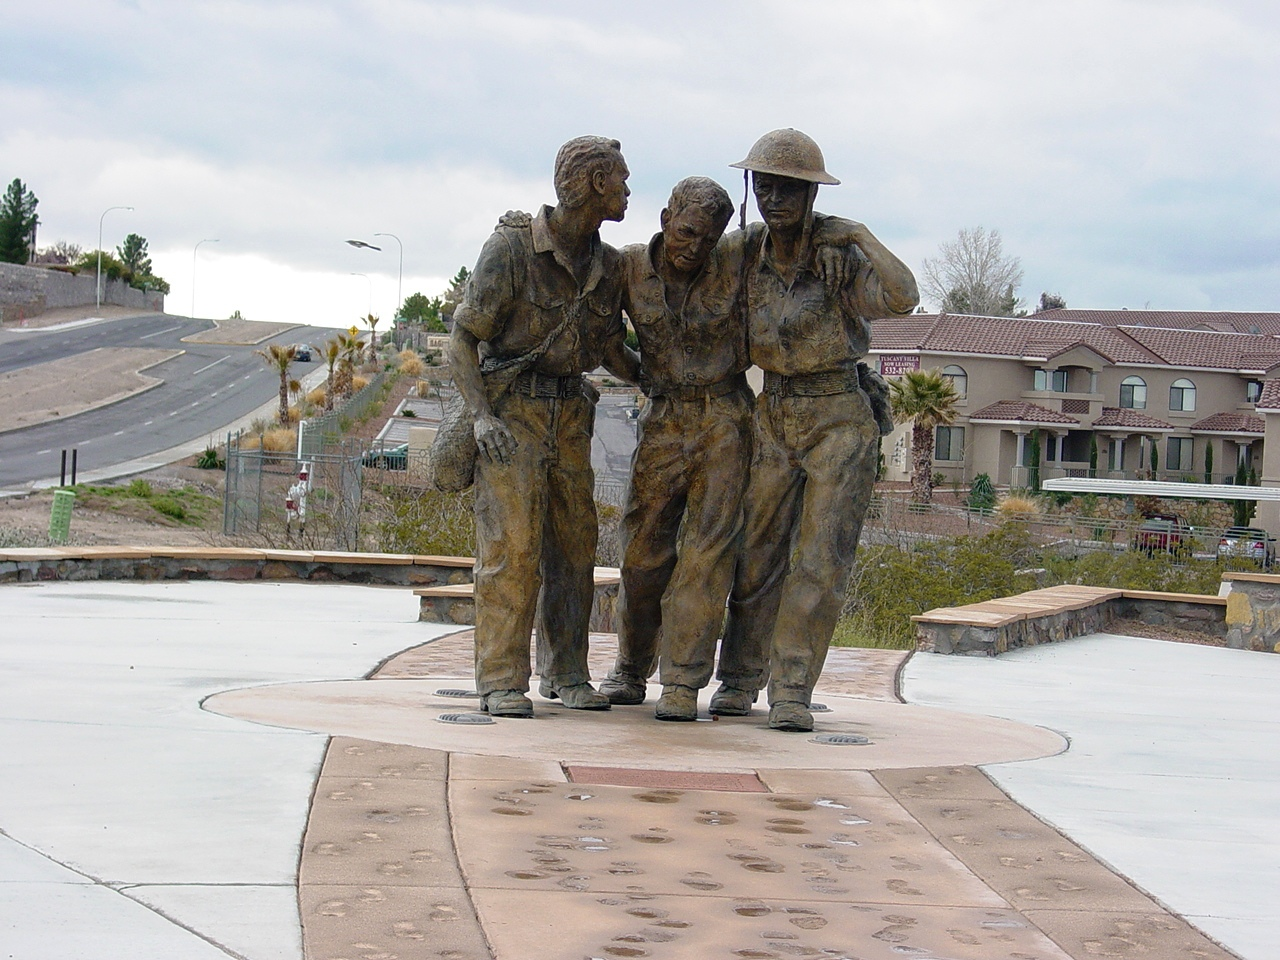 Statue of Bataan Death March walkers, located at Veterans Memorial Park, Las Cruces, N.M. This monument, the first nationally-funded shrine to the Death March, was dedicated in April 2002, and displays actual footprints of Bataan survivors.